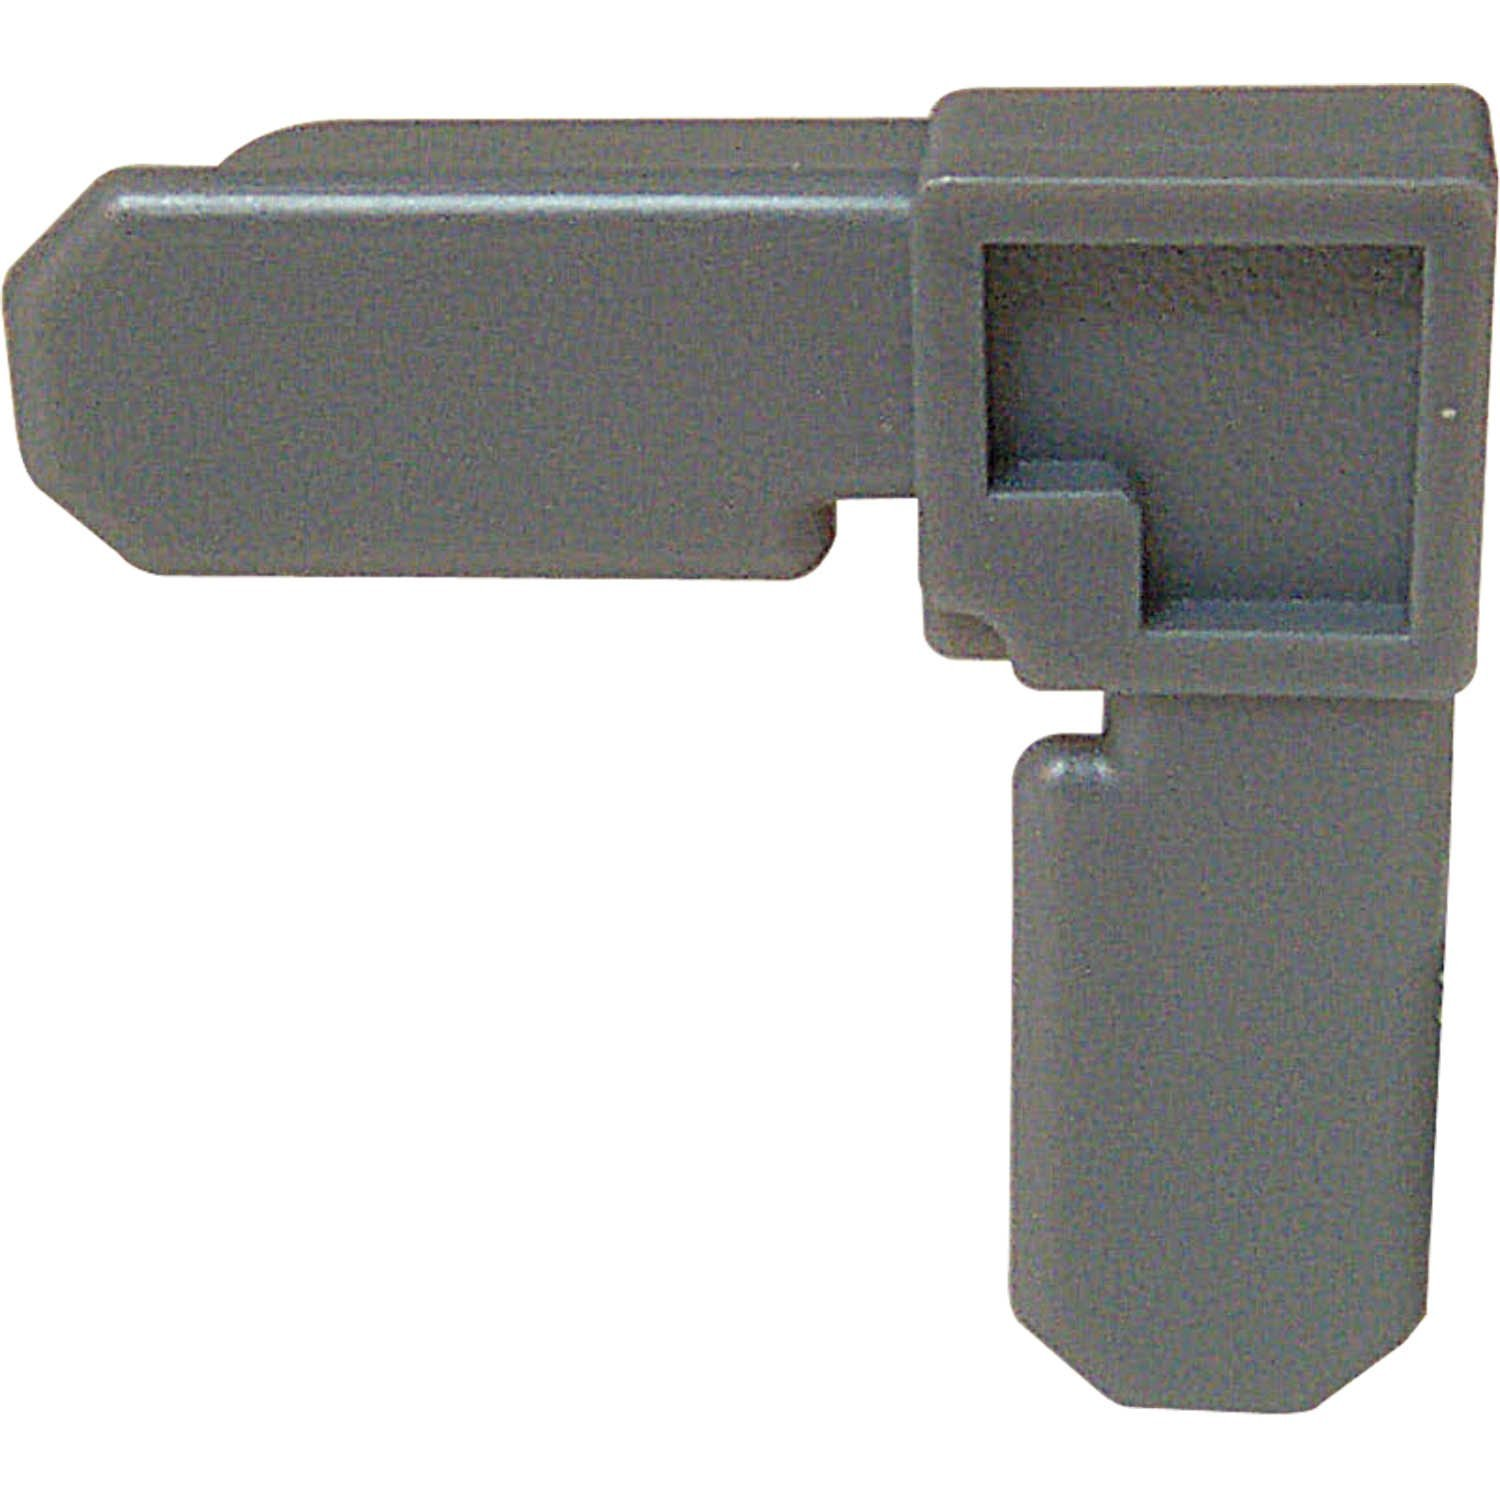 Prime-Line Products PL 7724 Screen Frame Corner, 7/16-Inch by 3/4-Inch, Gray Plastic,(Pack of 4)